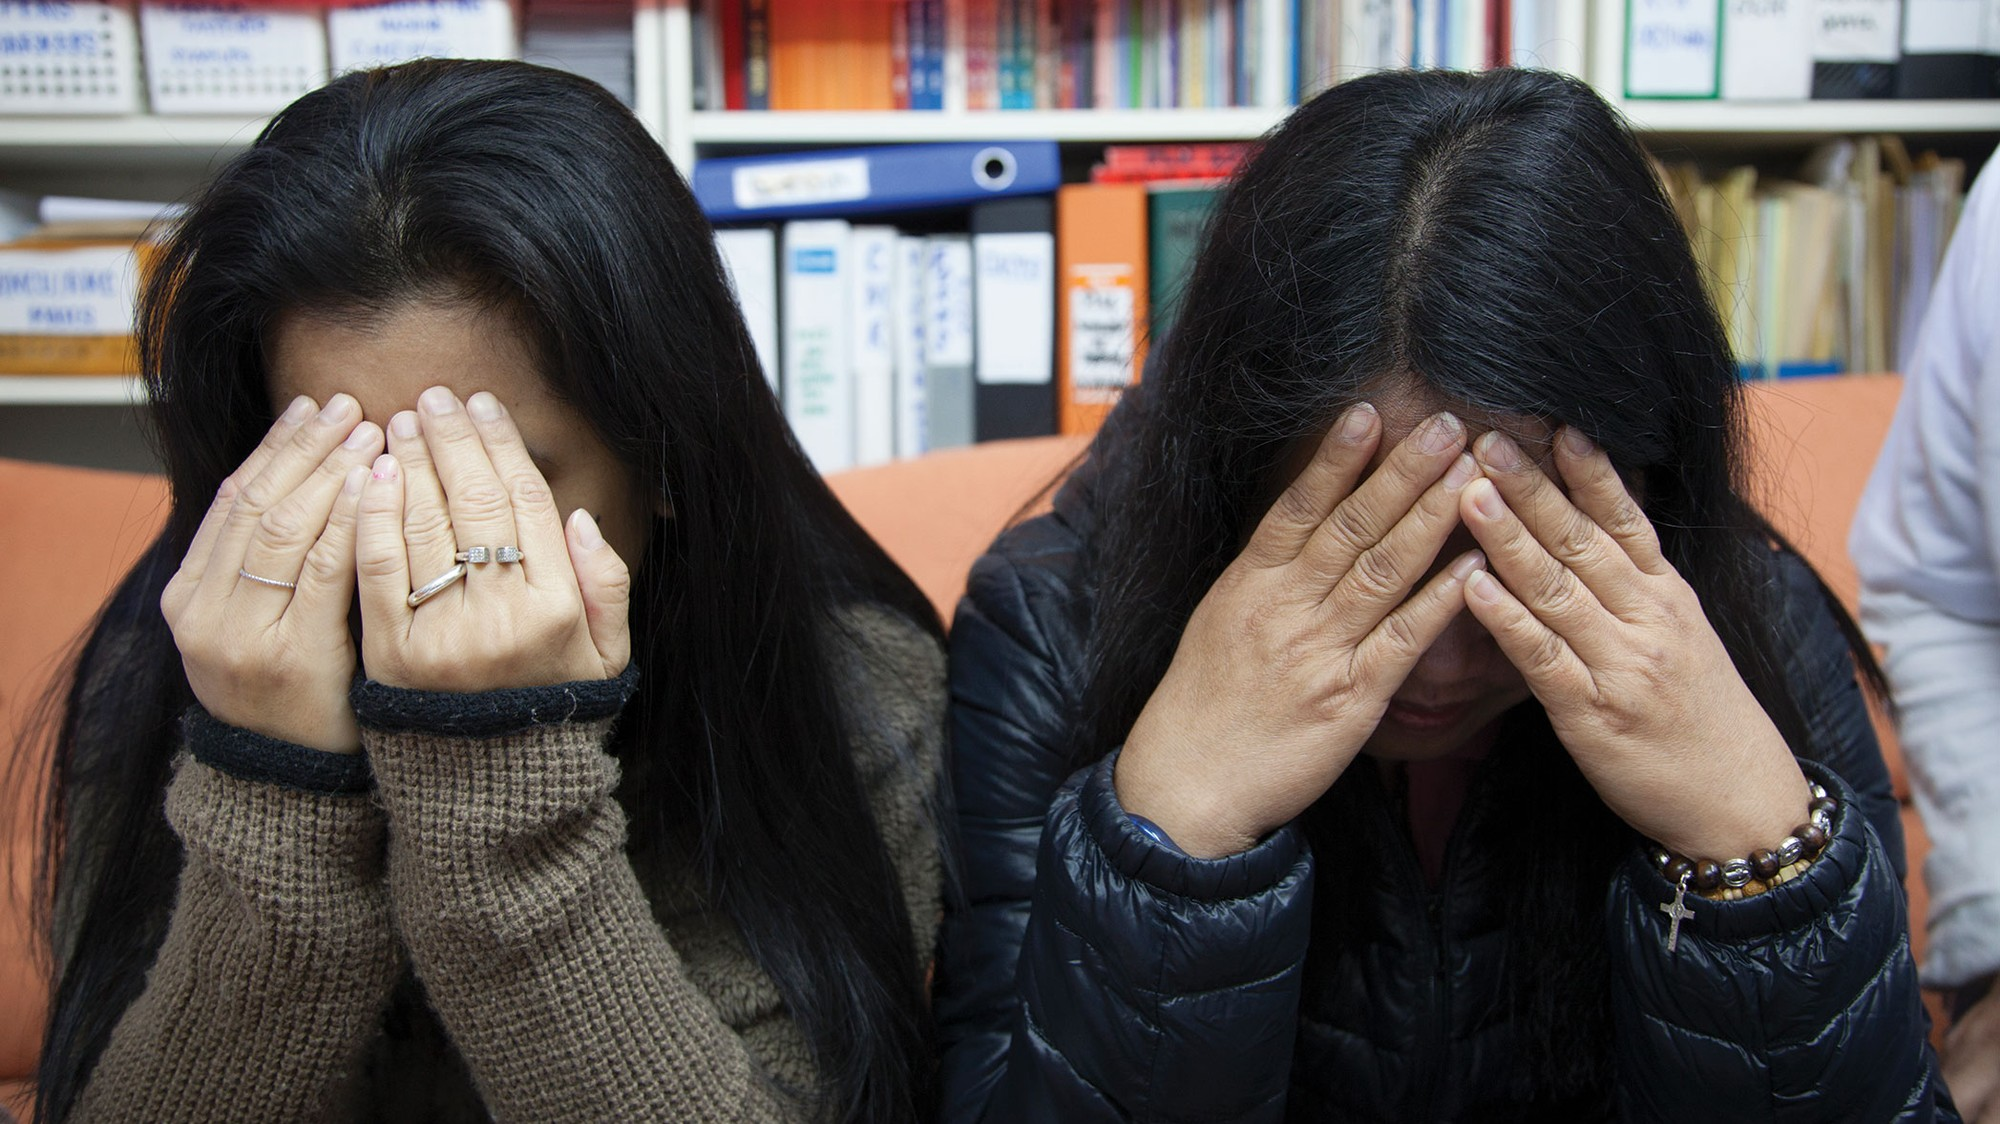 Foreign Domestic Worker Abuse Is Rampant in Hong Kong - VICE